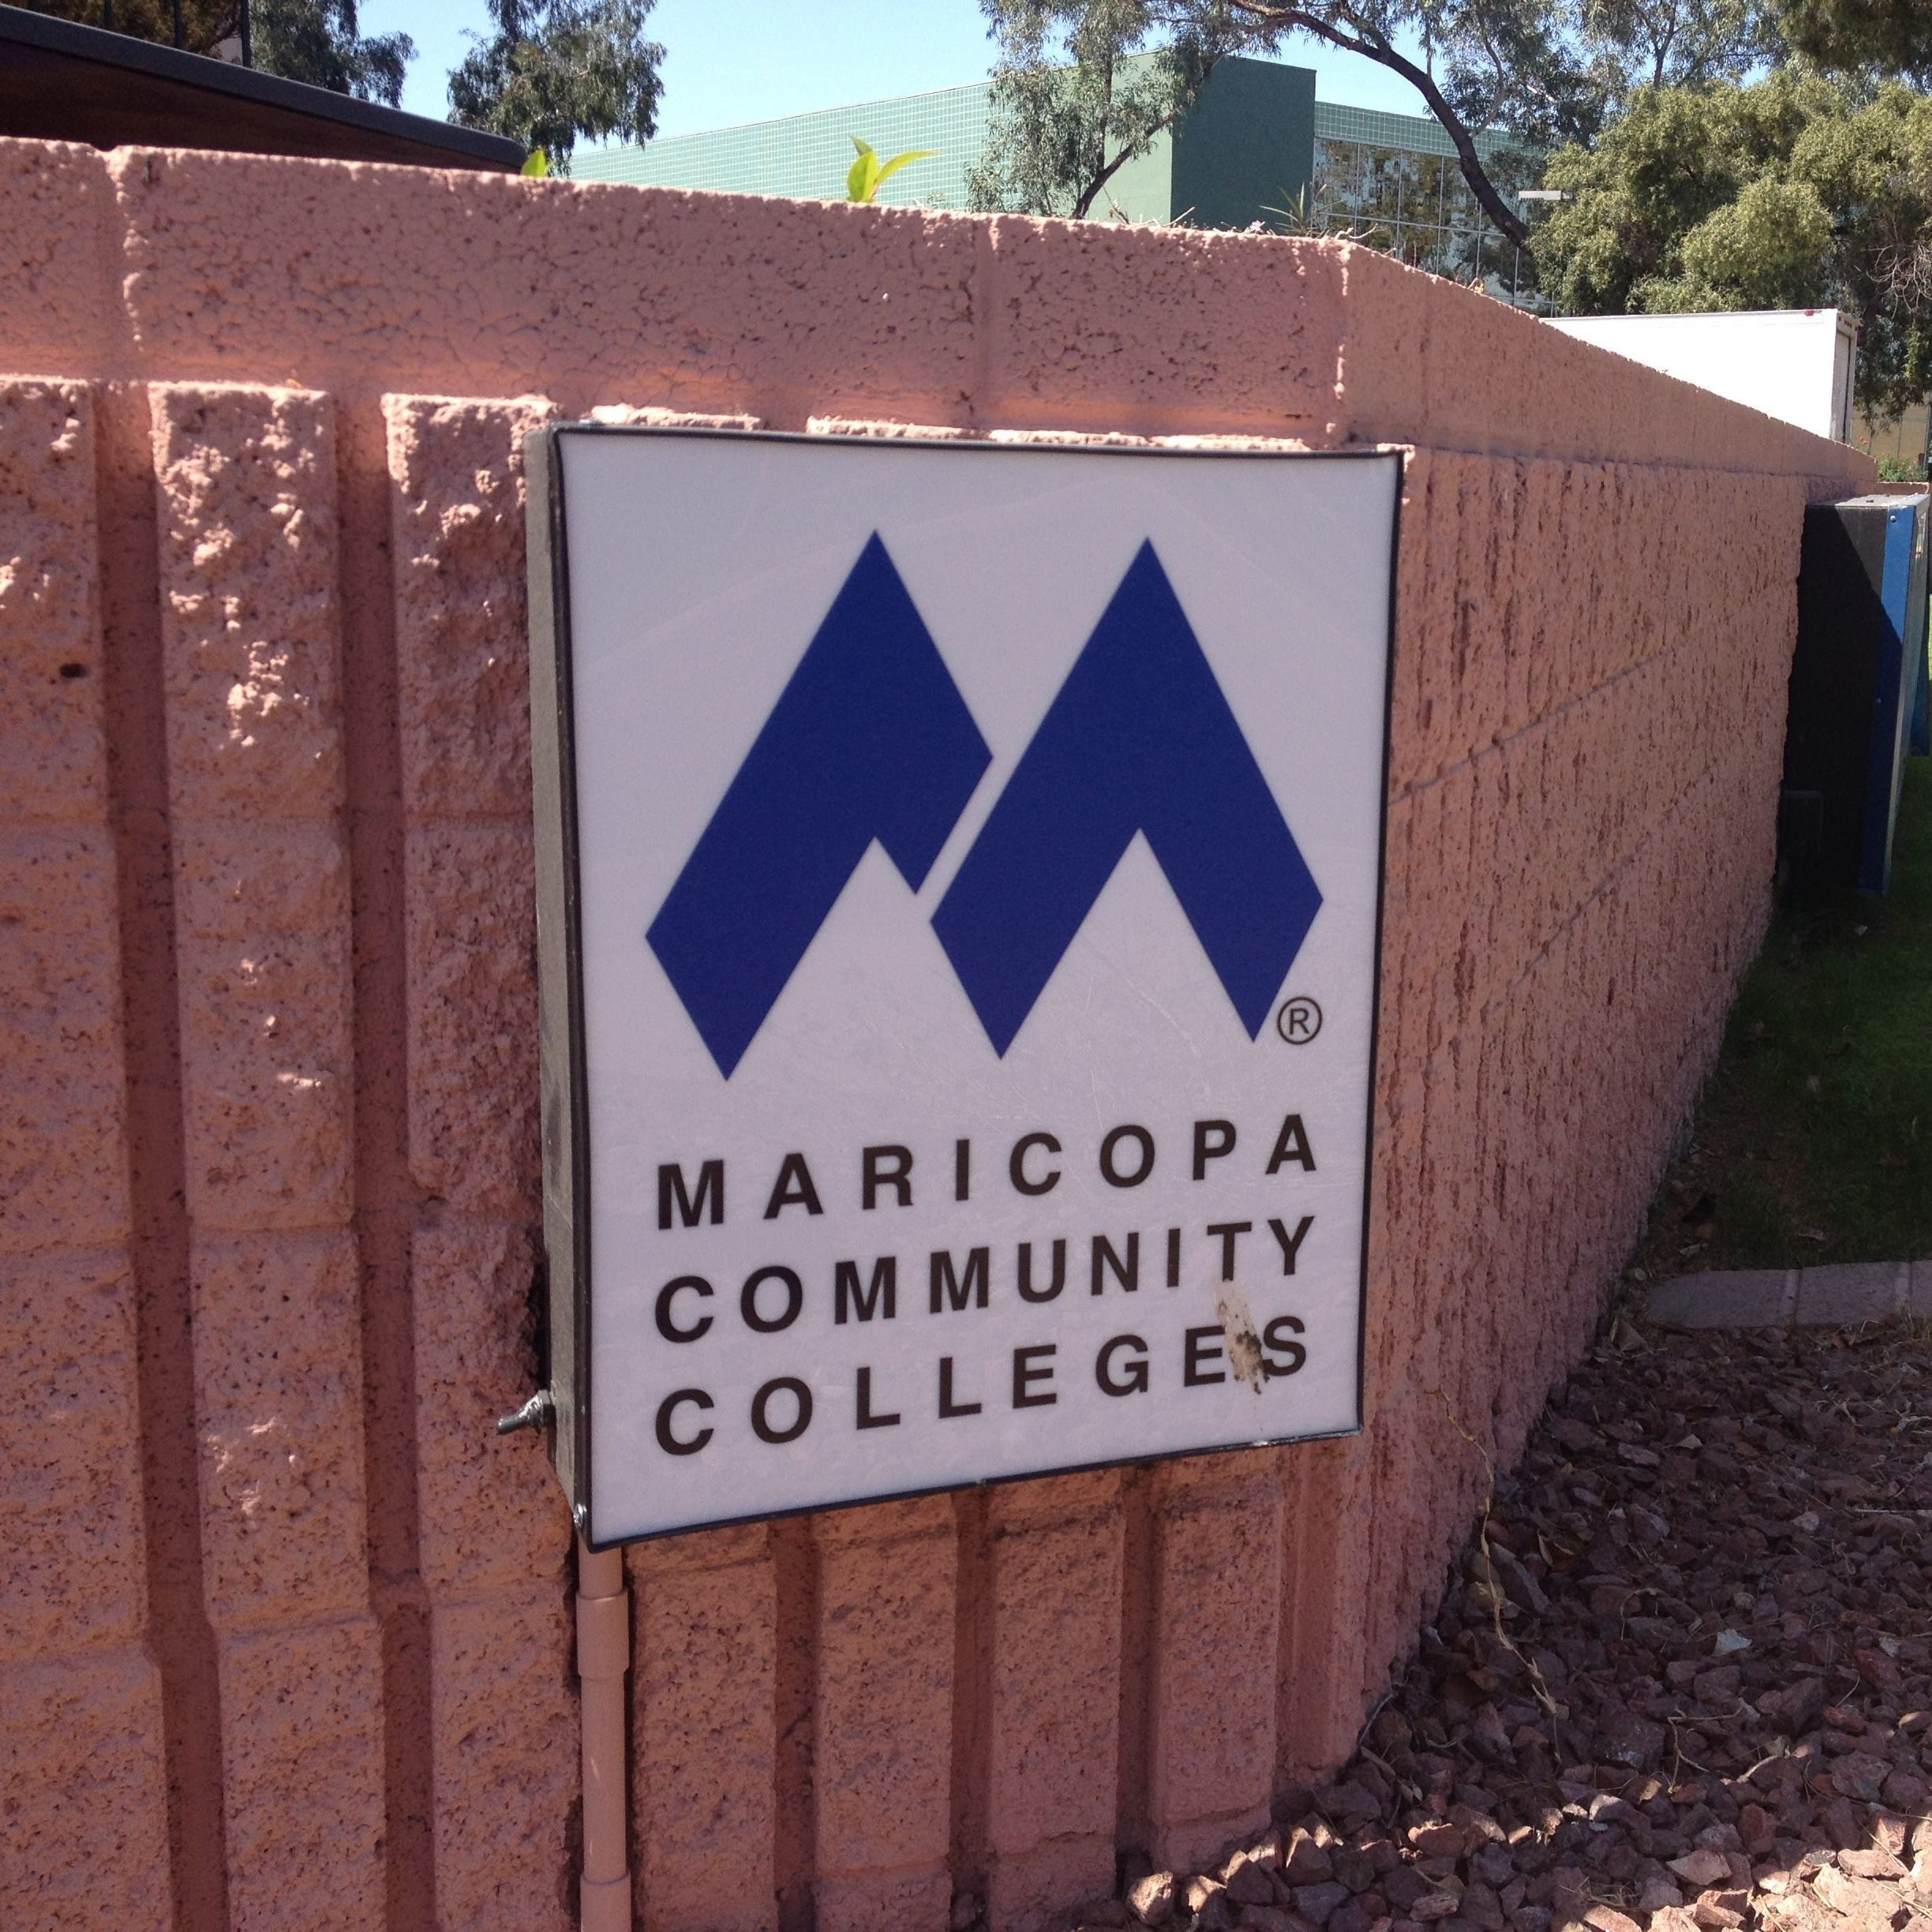 Big drop in 'dreamers' enrolled at Maricopa Community Colleges after tuition ruling